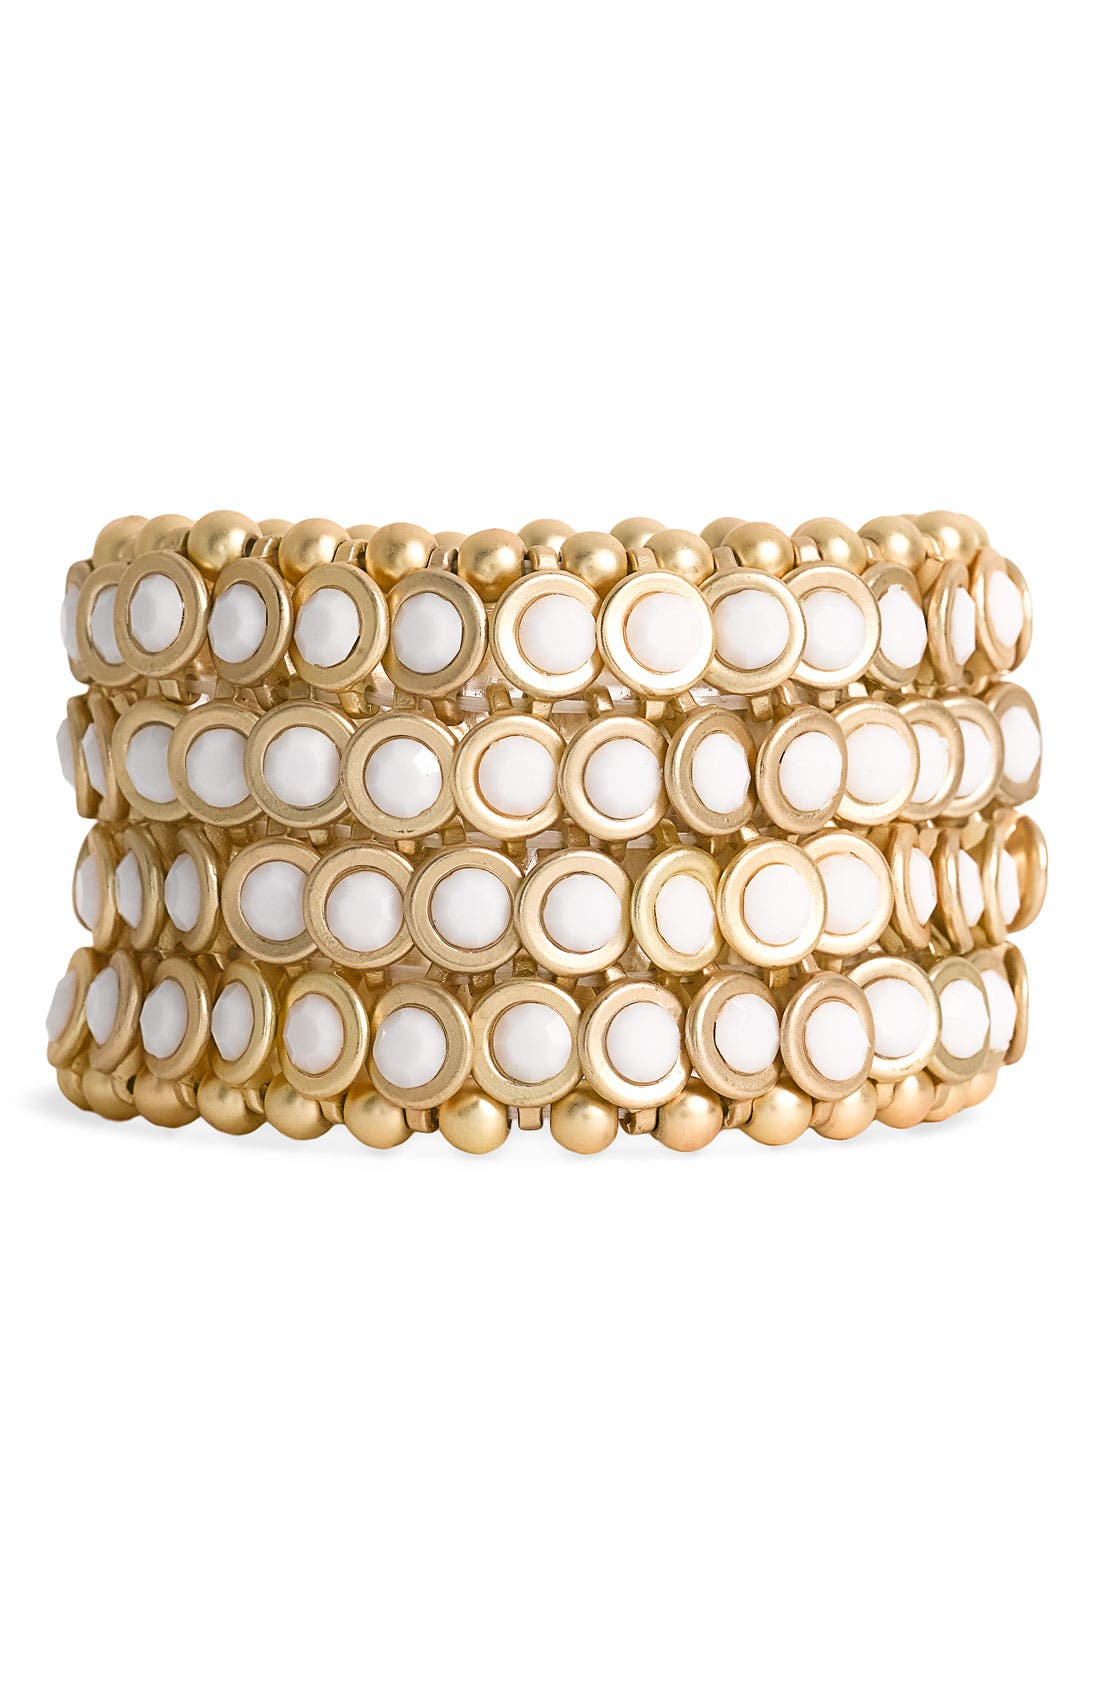 Alternate Image 1 Selected - Tasha Bezel Set Stone Stretch Bracelet